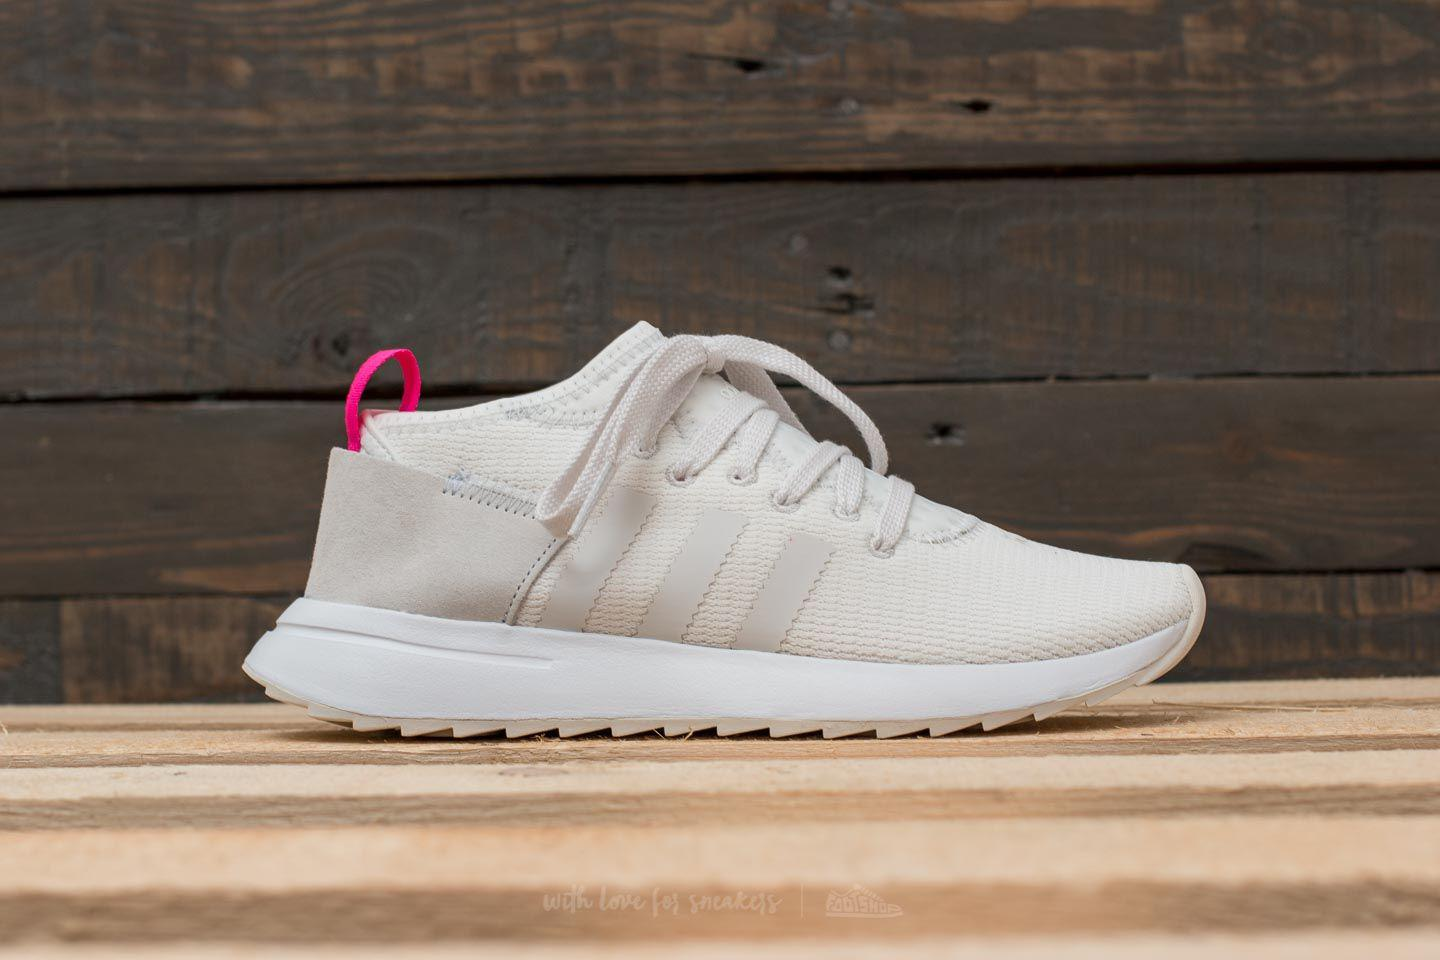 official photos d2dec 599e1 Lyst - adidas Originals Adidas Flb Mid Crystal White Crystal